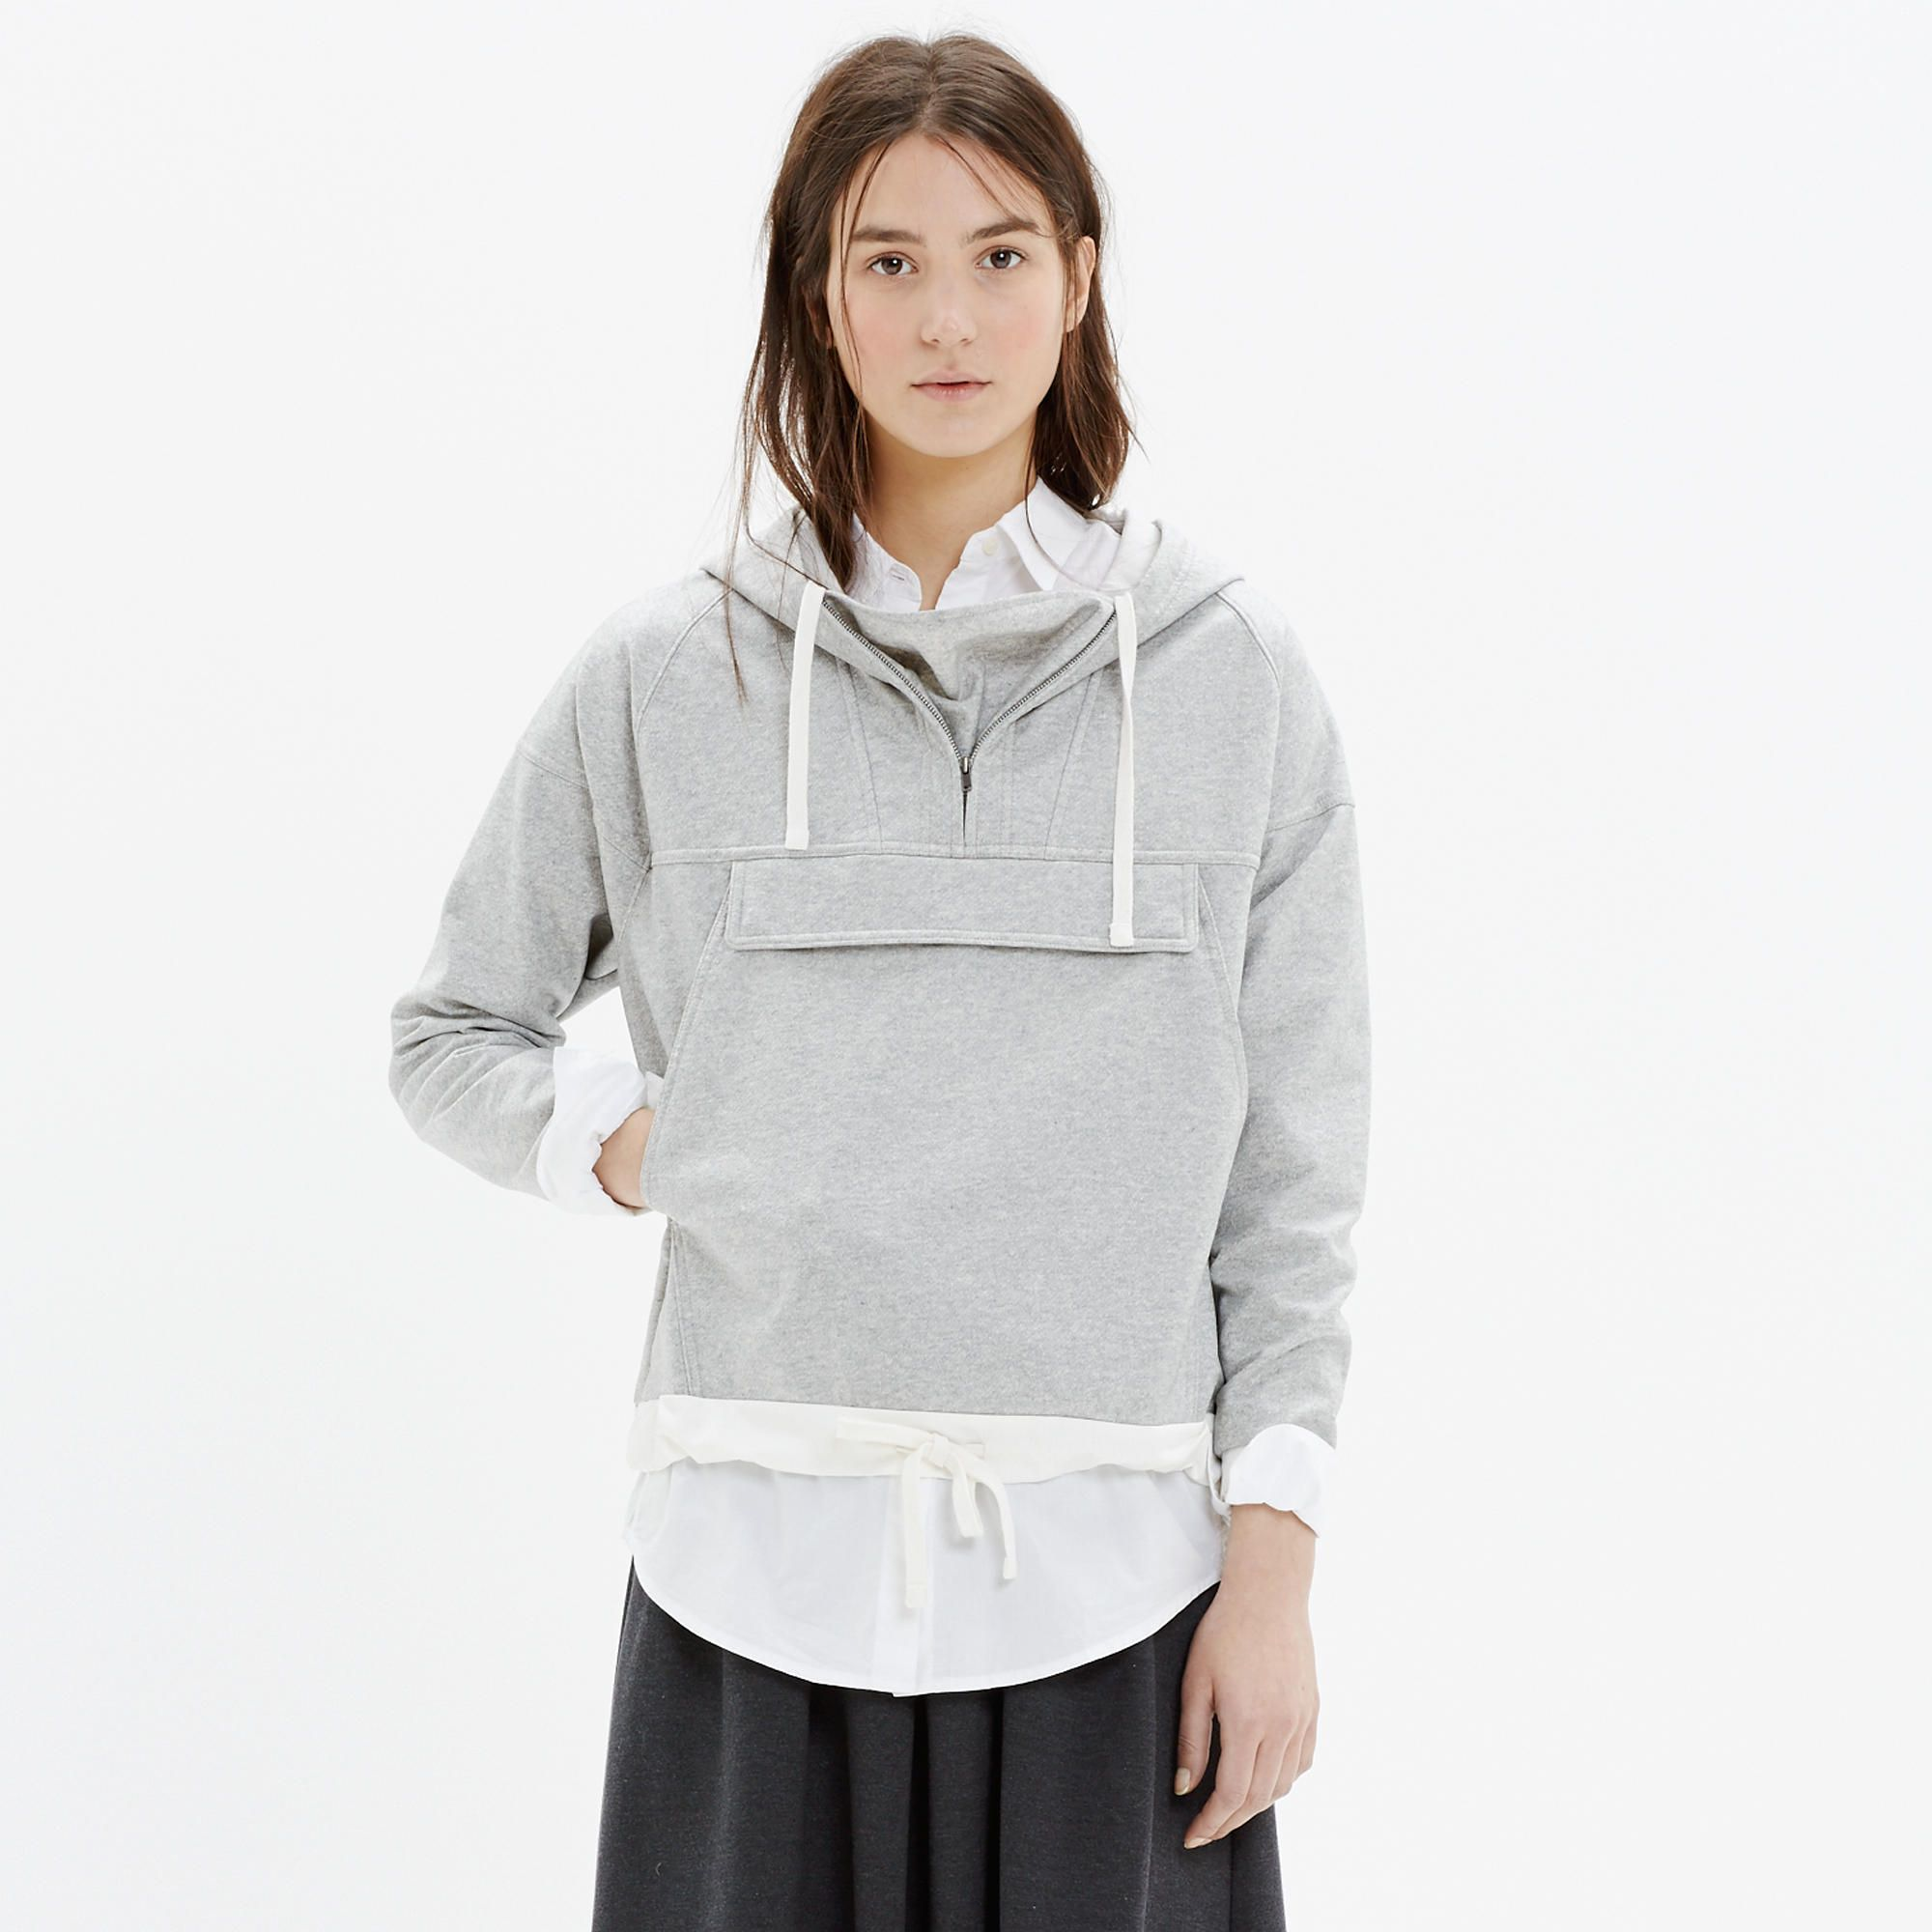 Coated Windwake Hoodie : our current favorites | Madewell